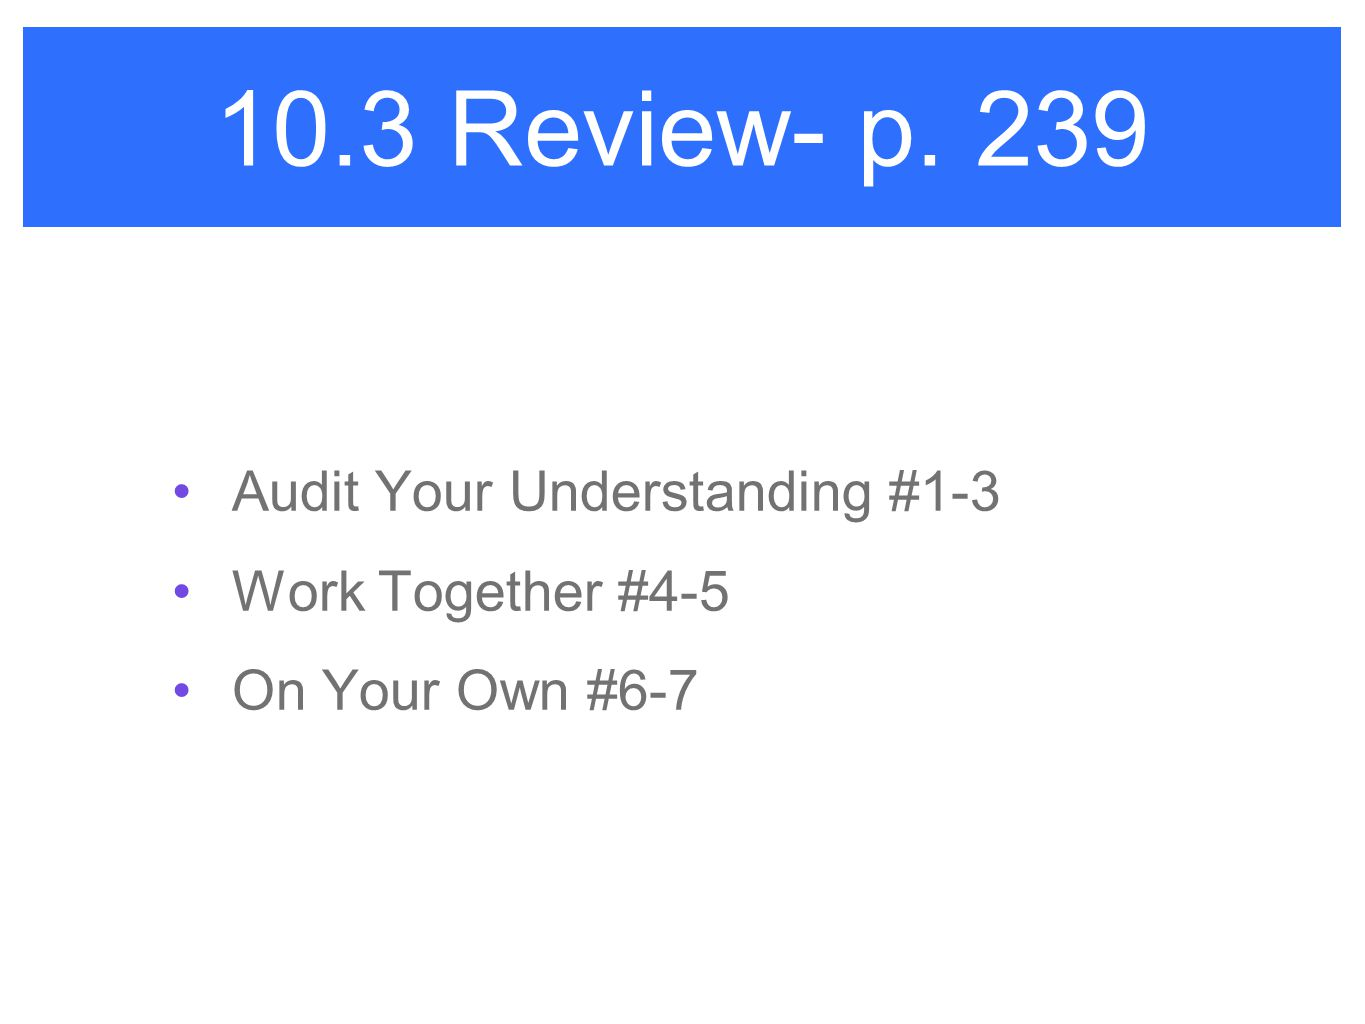 10.3 Review- p. 239 Audit Your Understanding #1-3 Work Together #4-5 On Your Own #6-7